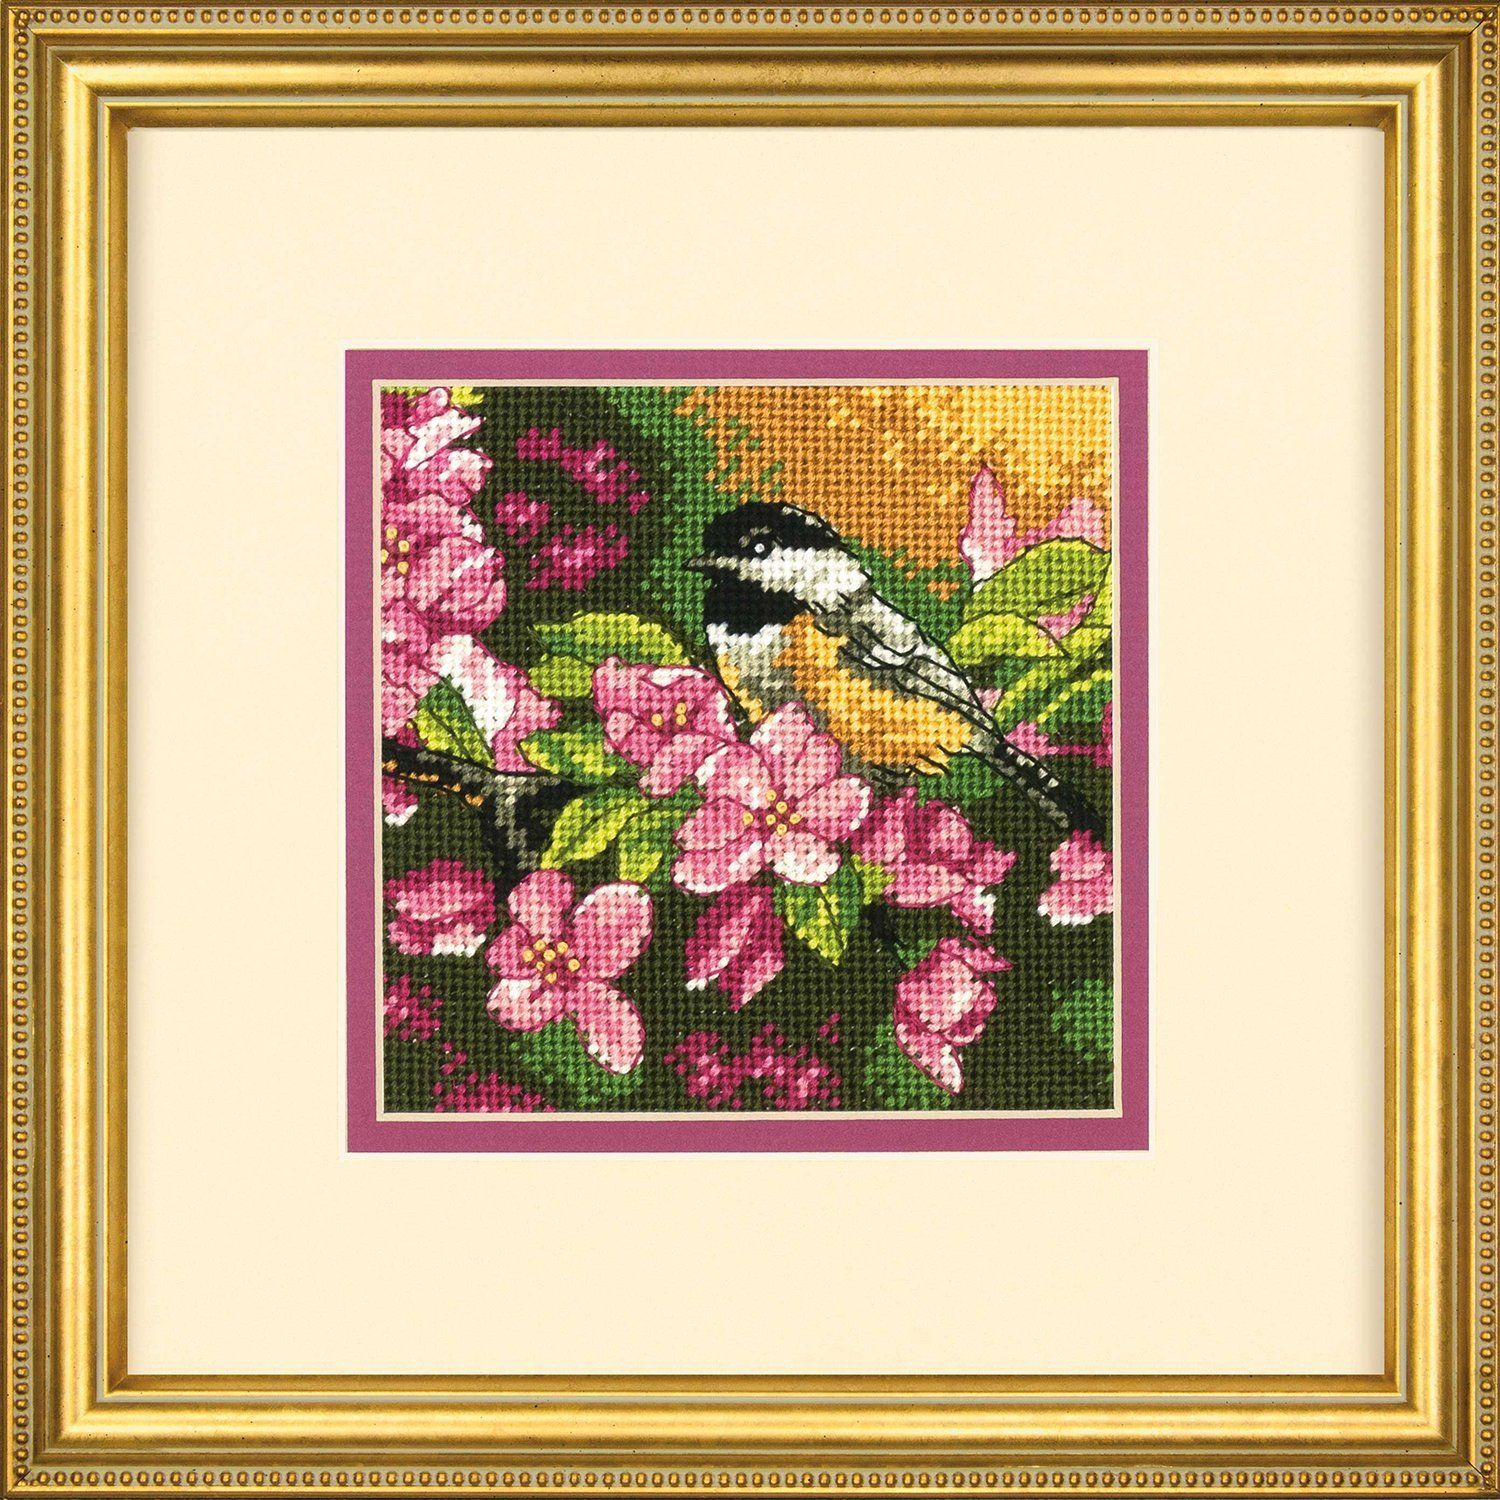 Amazon Com Mini Needlepoint Chickadee In Pink Arts Crafts Sewing Needlepoint Kits Arts And Crafts Supplies Beginner Knitting Patterns